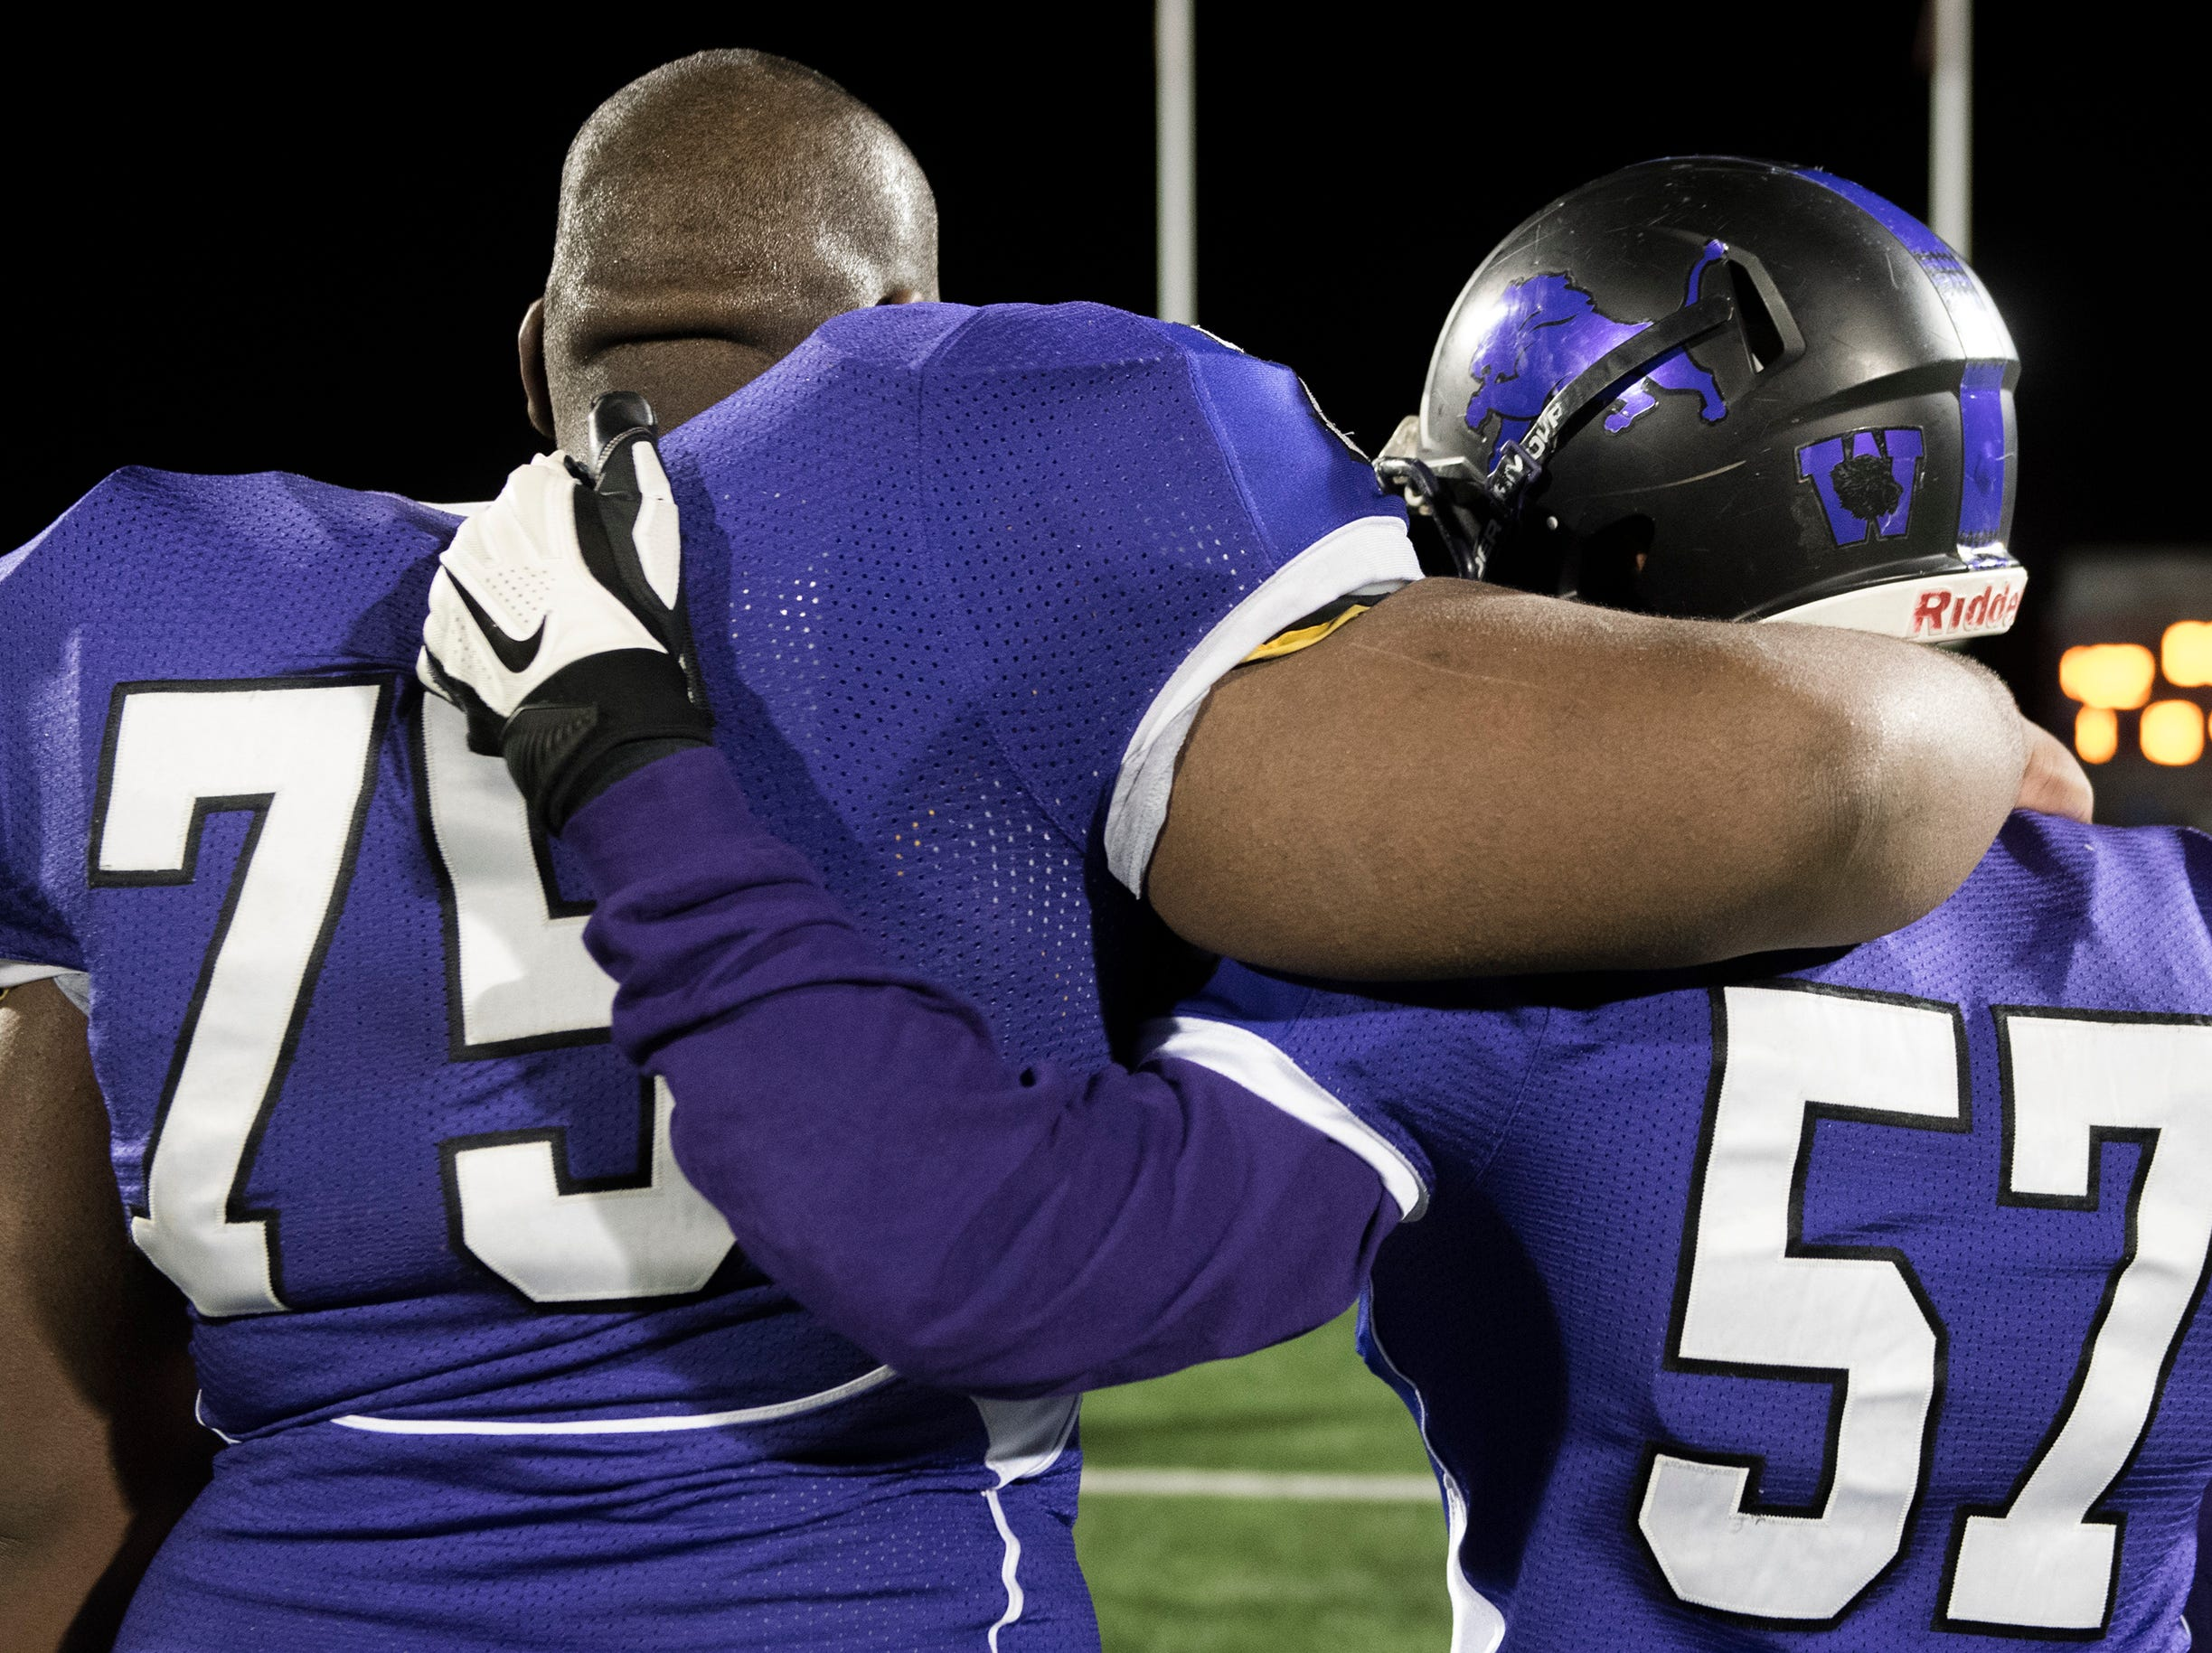 West's Kevin Schindler (75) and Lenin Leon Fernandez (57) embrace following an annual East-West game Wednesday, Nov. 21, 2018 at Cherry Hill West High School in Cherry Hill, N.J. West won 22-7.